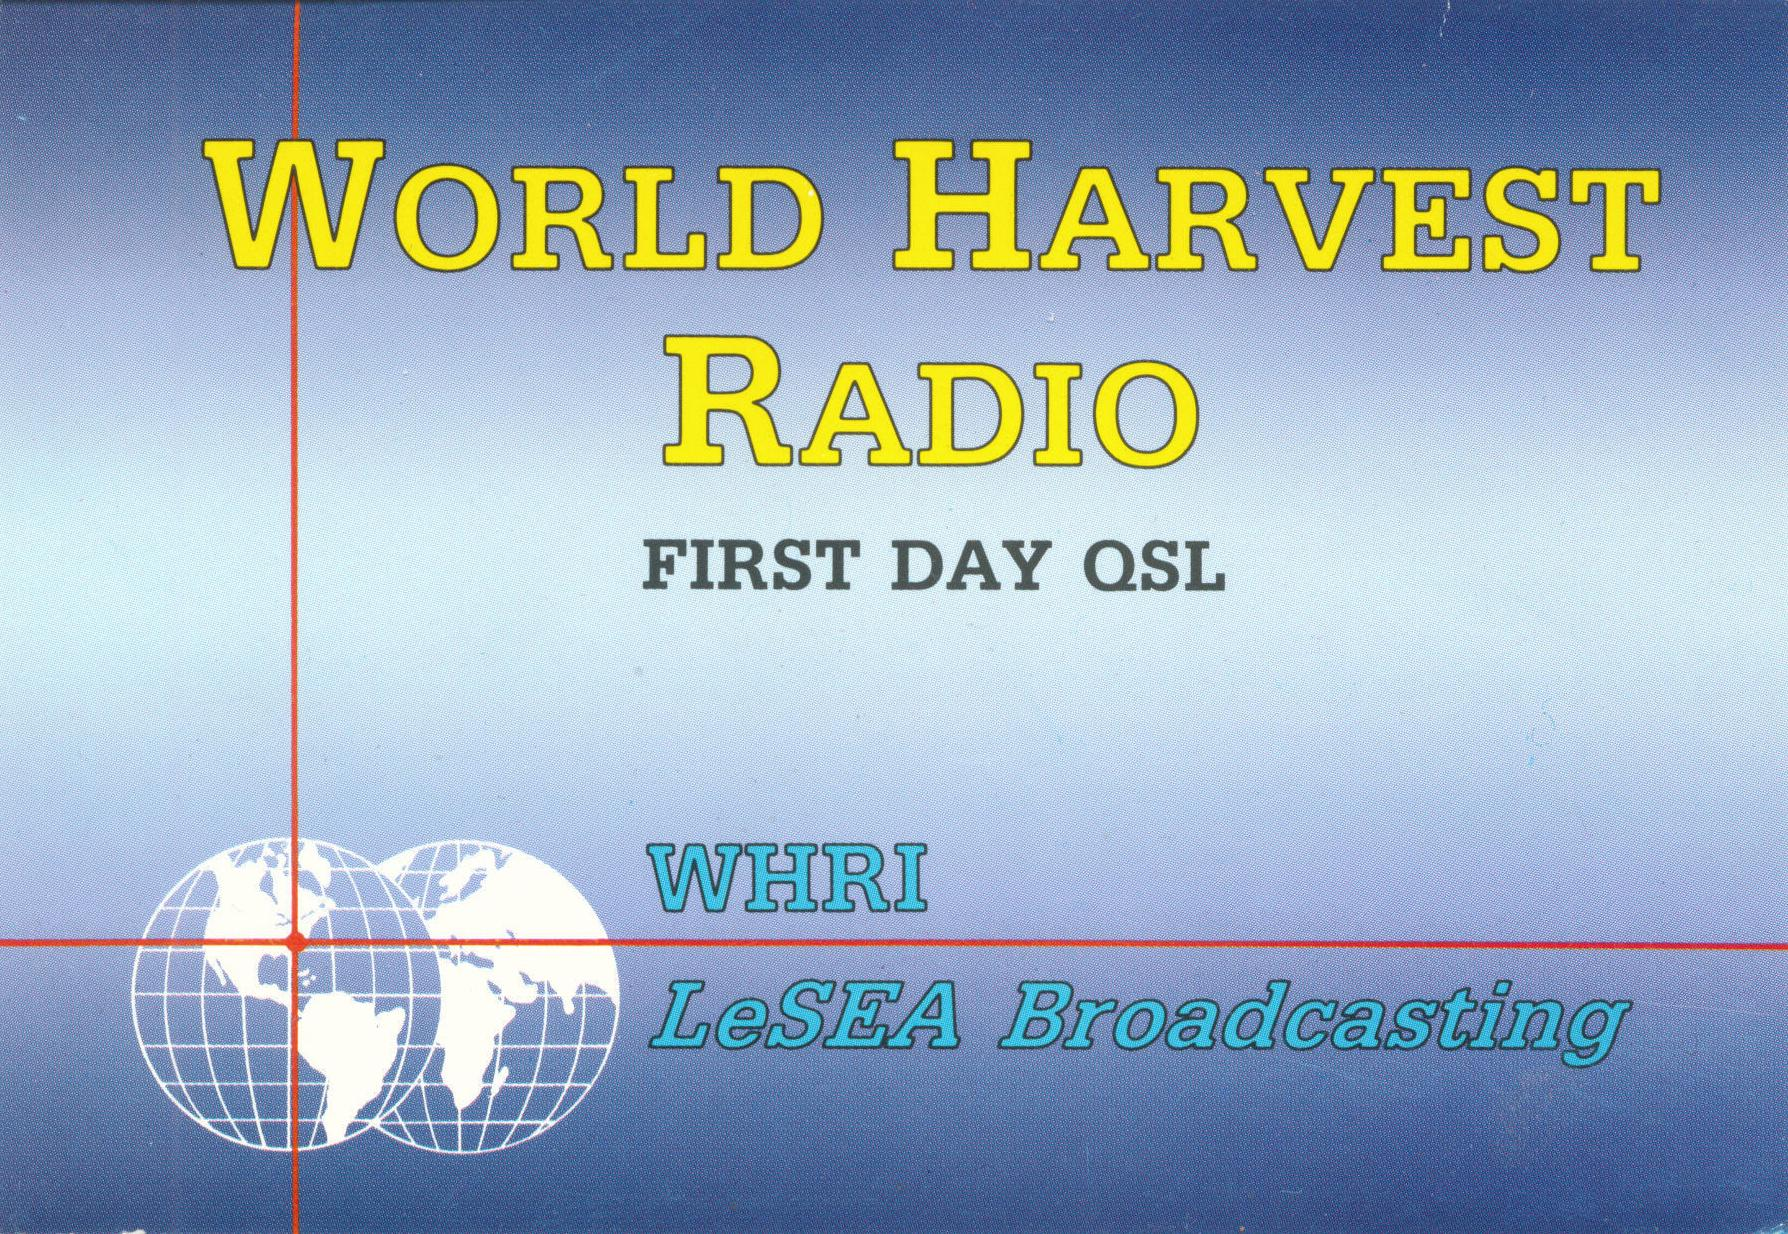 World harvest radio lesea broadcasting corporation